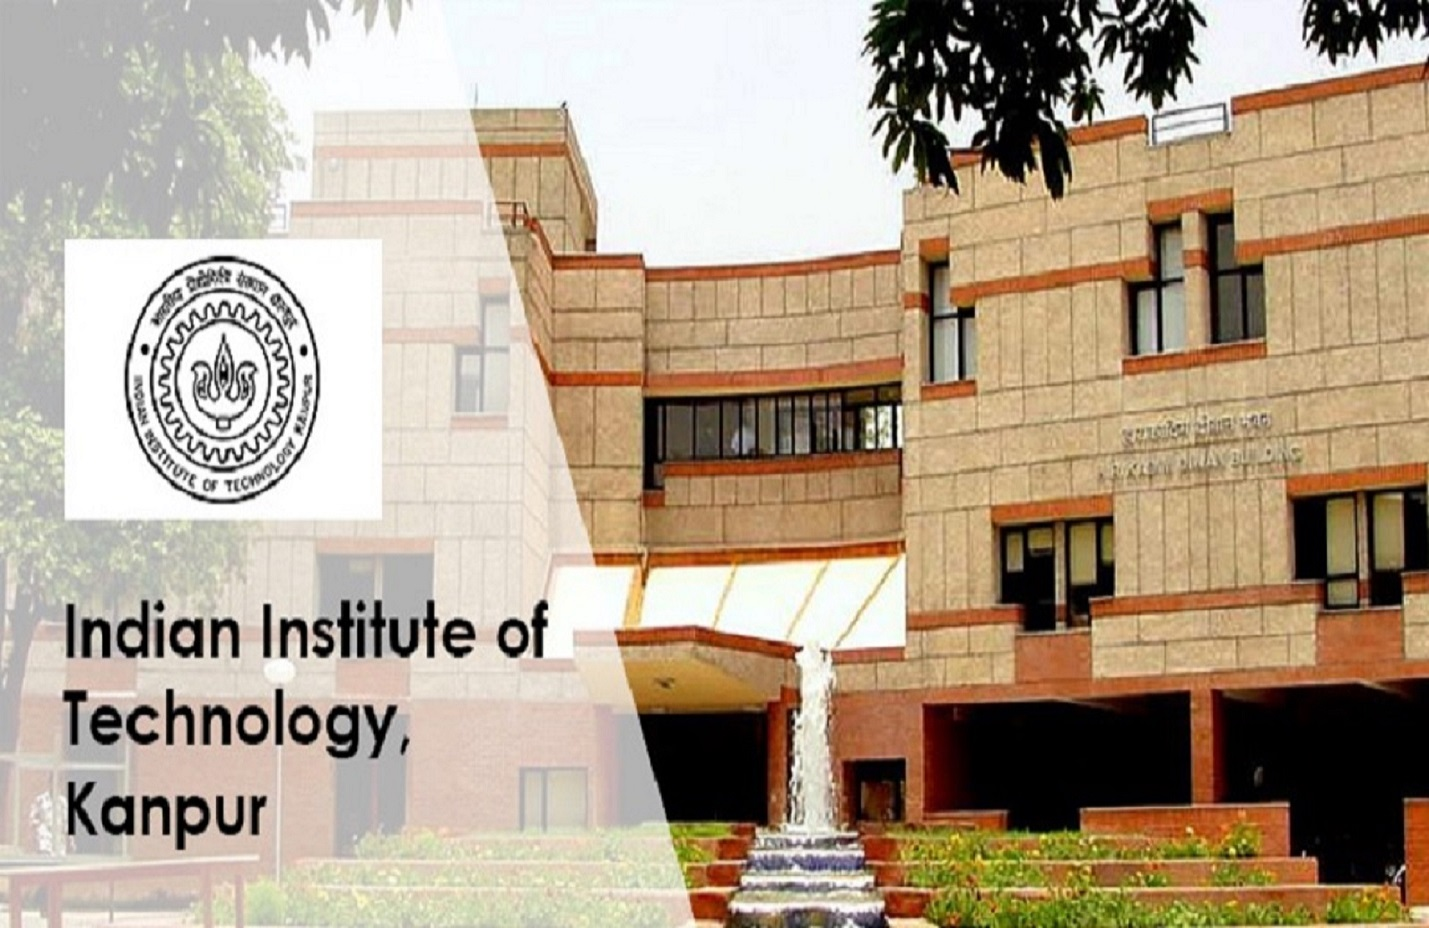 Research Associate-I at IIT Kanpur: Salary of Rs. 47,000/- + 16% HRA